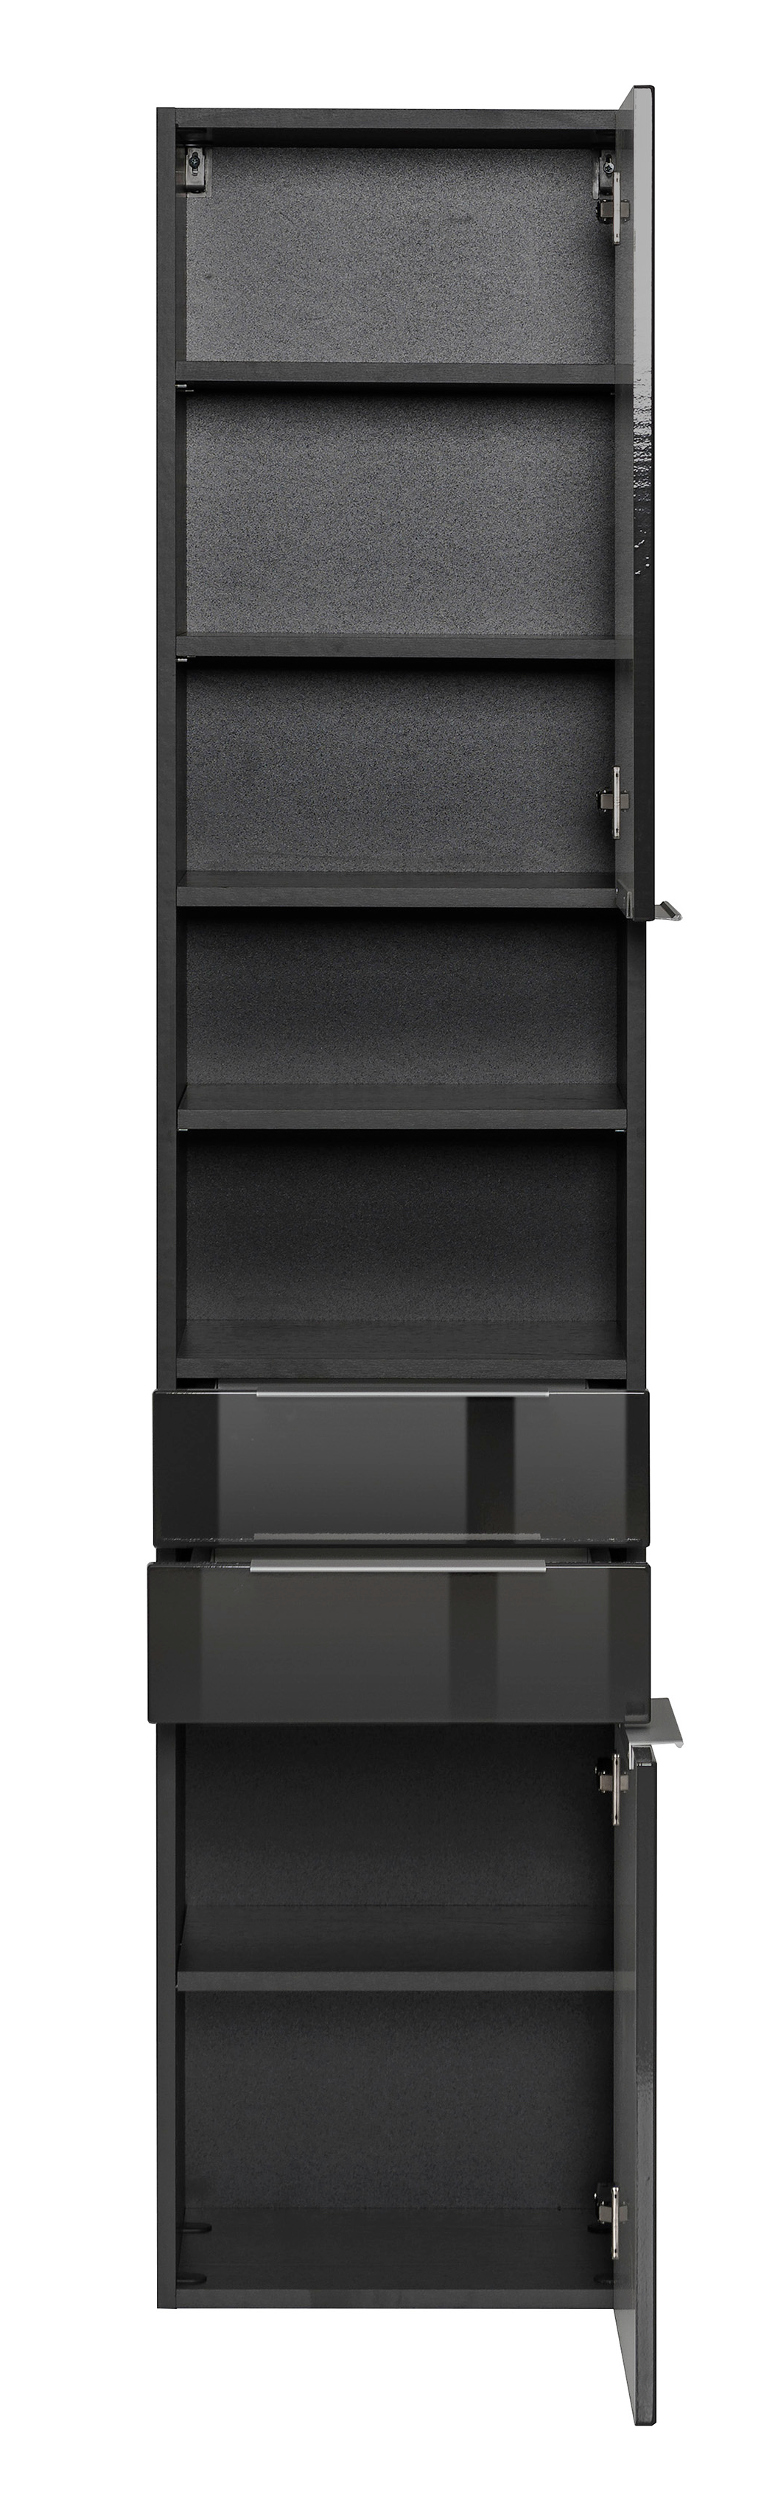 bad hochschrank ravello 2 t rig 2 schubk sten 40 cm. Black Bedroom Furniture Sets. Home Design Ideas